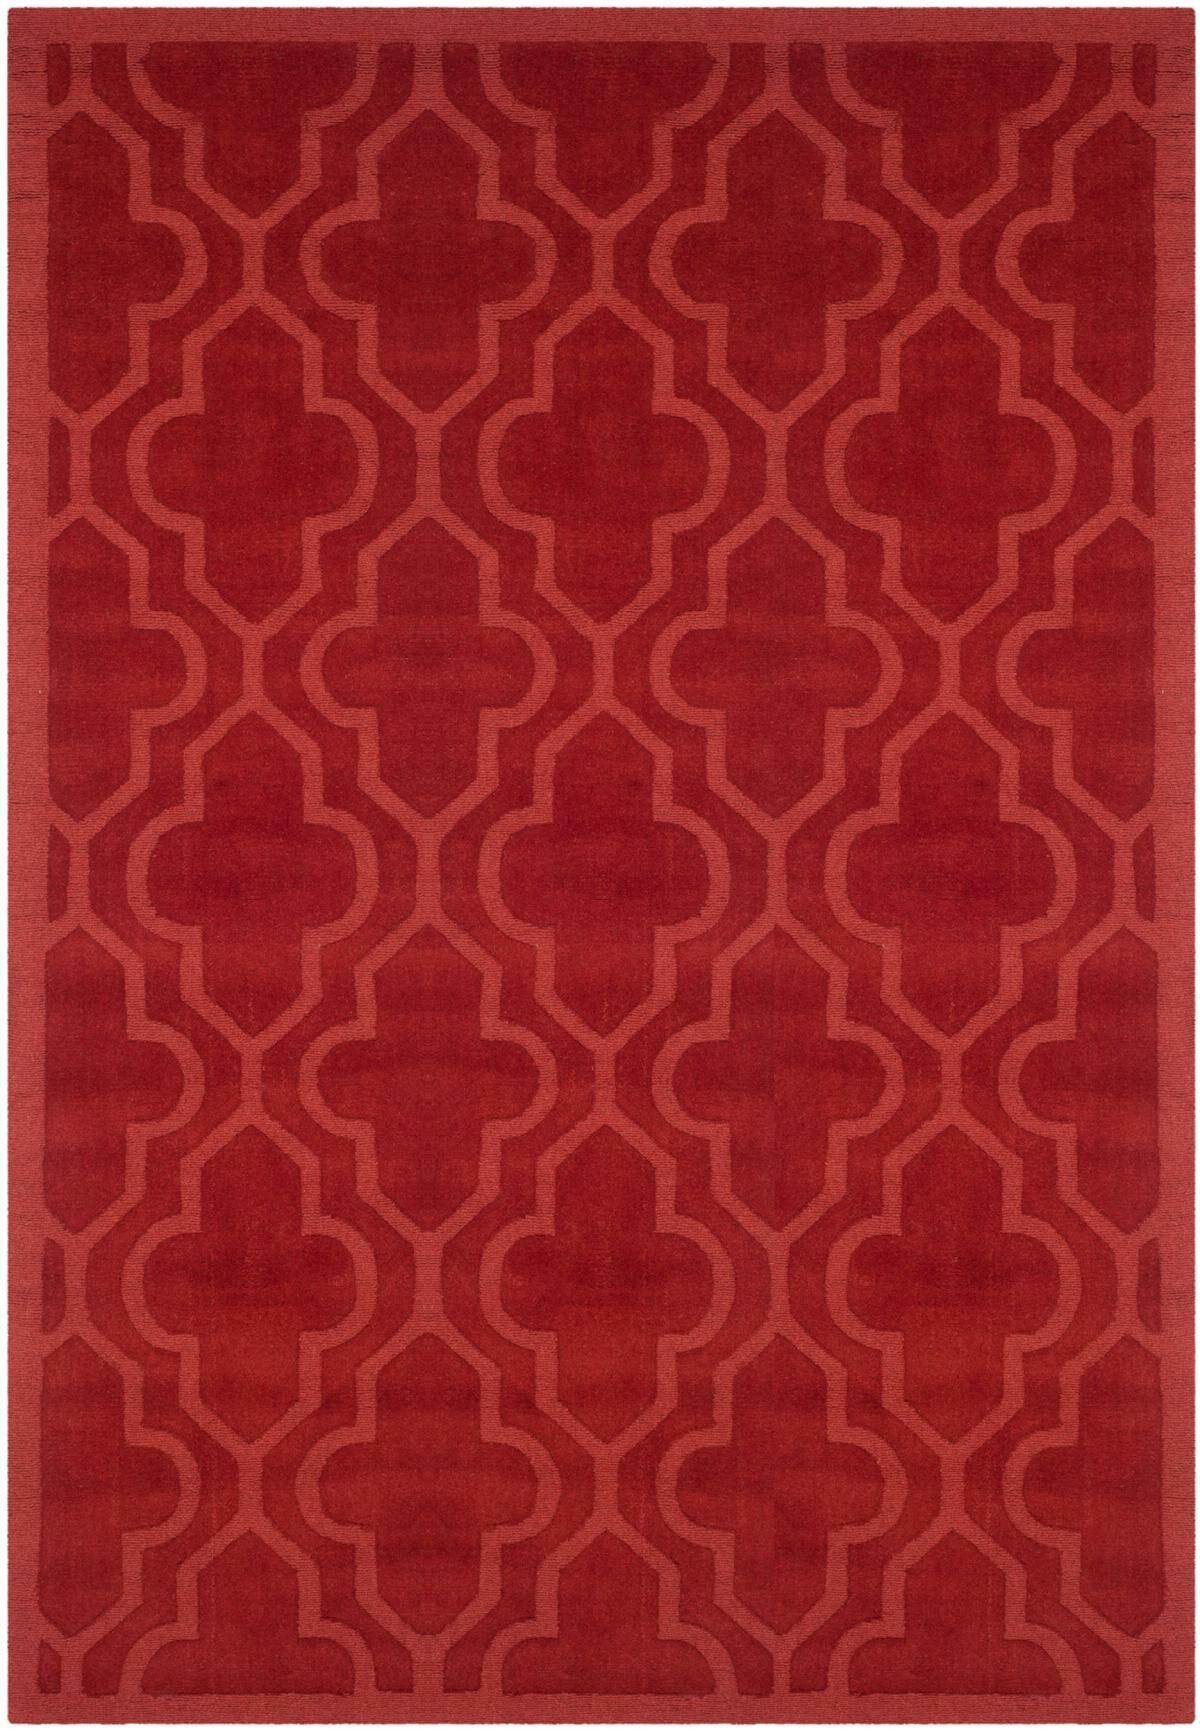 Casados Hand-Loomed Rust Area Rug Rug Size: Rectangle 7'6